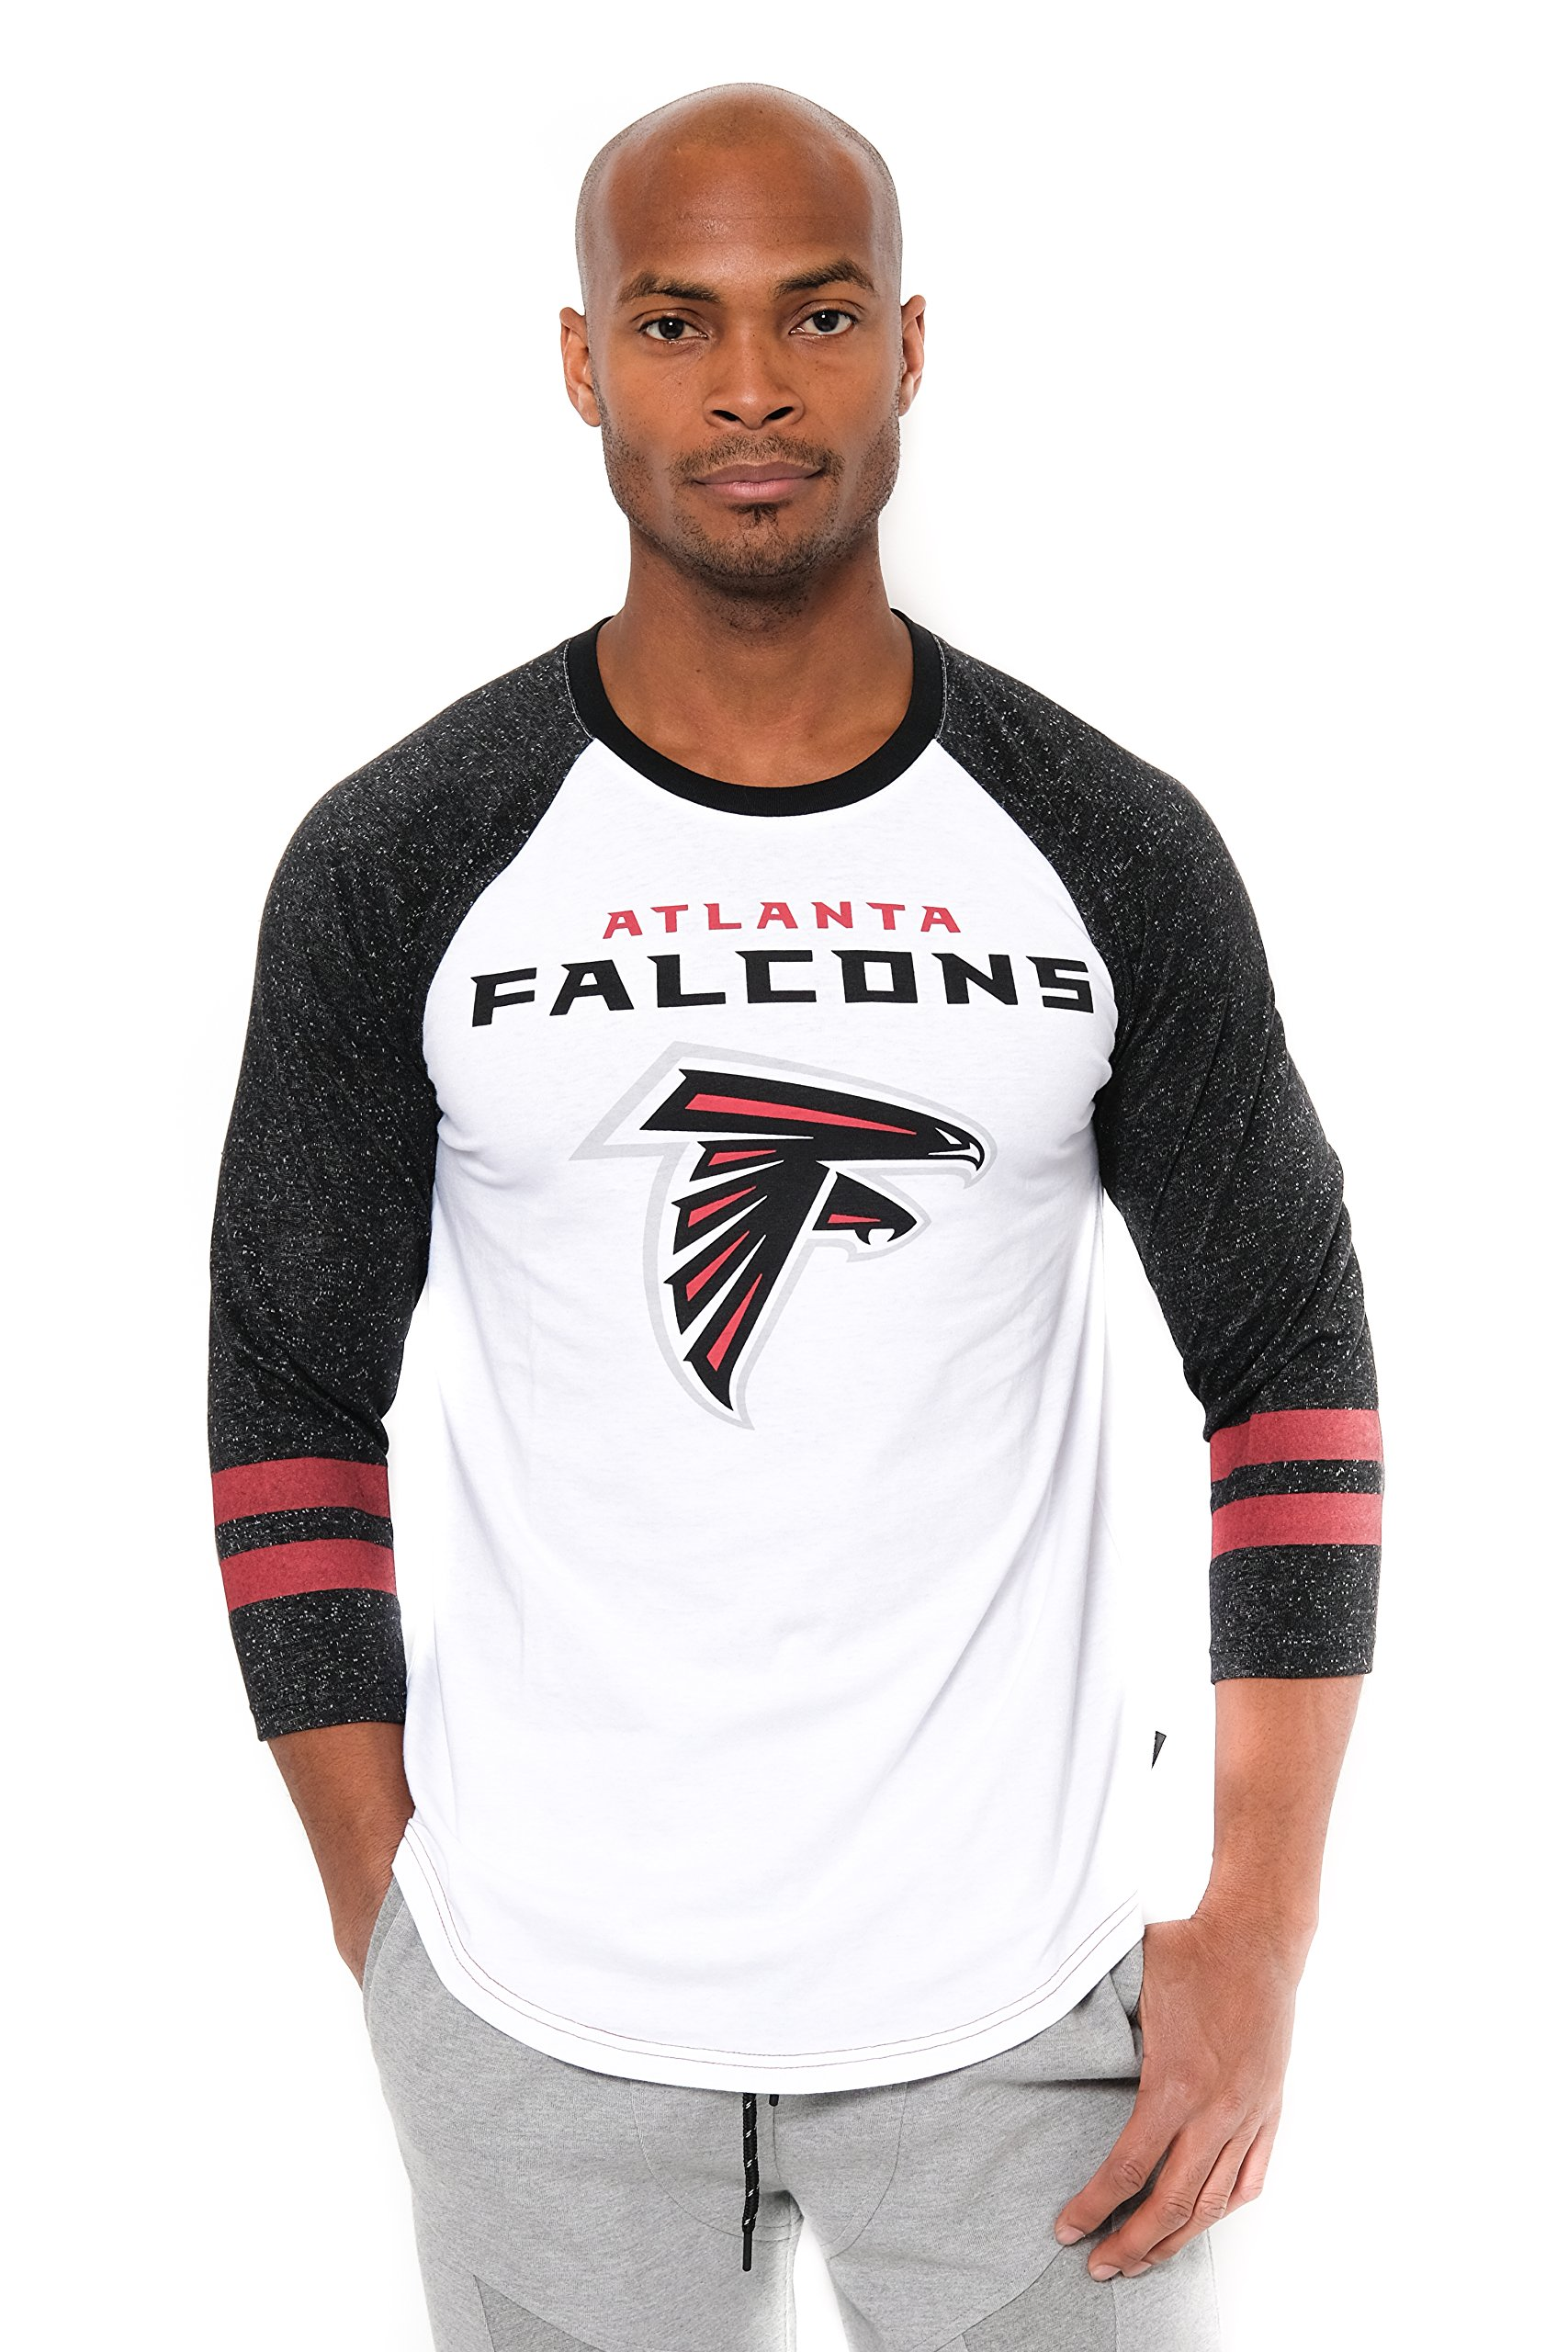 NFL Men's Atlanta Falcons T-Shirt Raglan Baseball 3/4 Long Sleeve Tee Shirt, Large, White